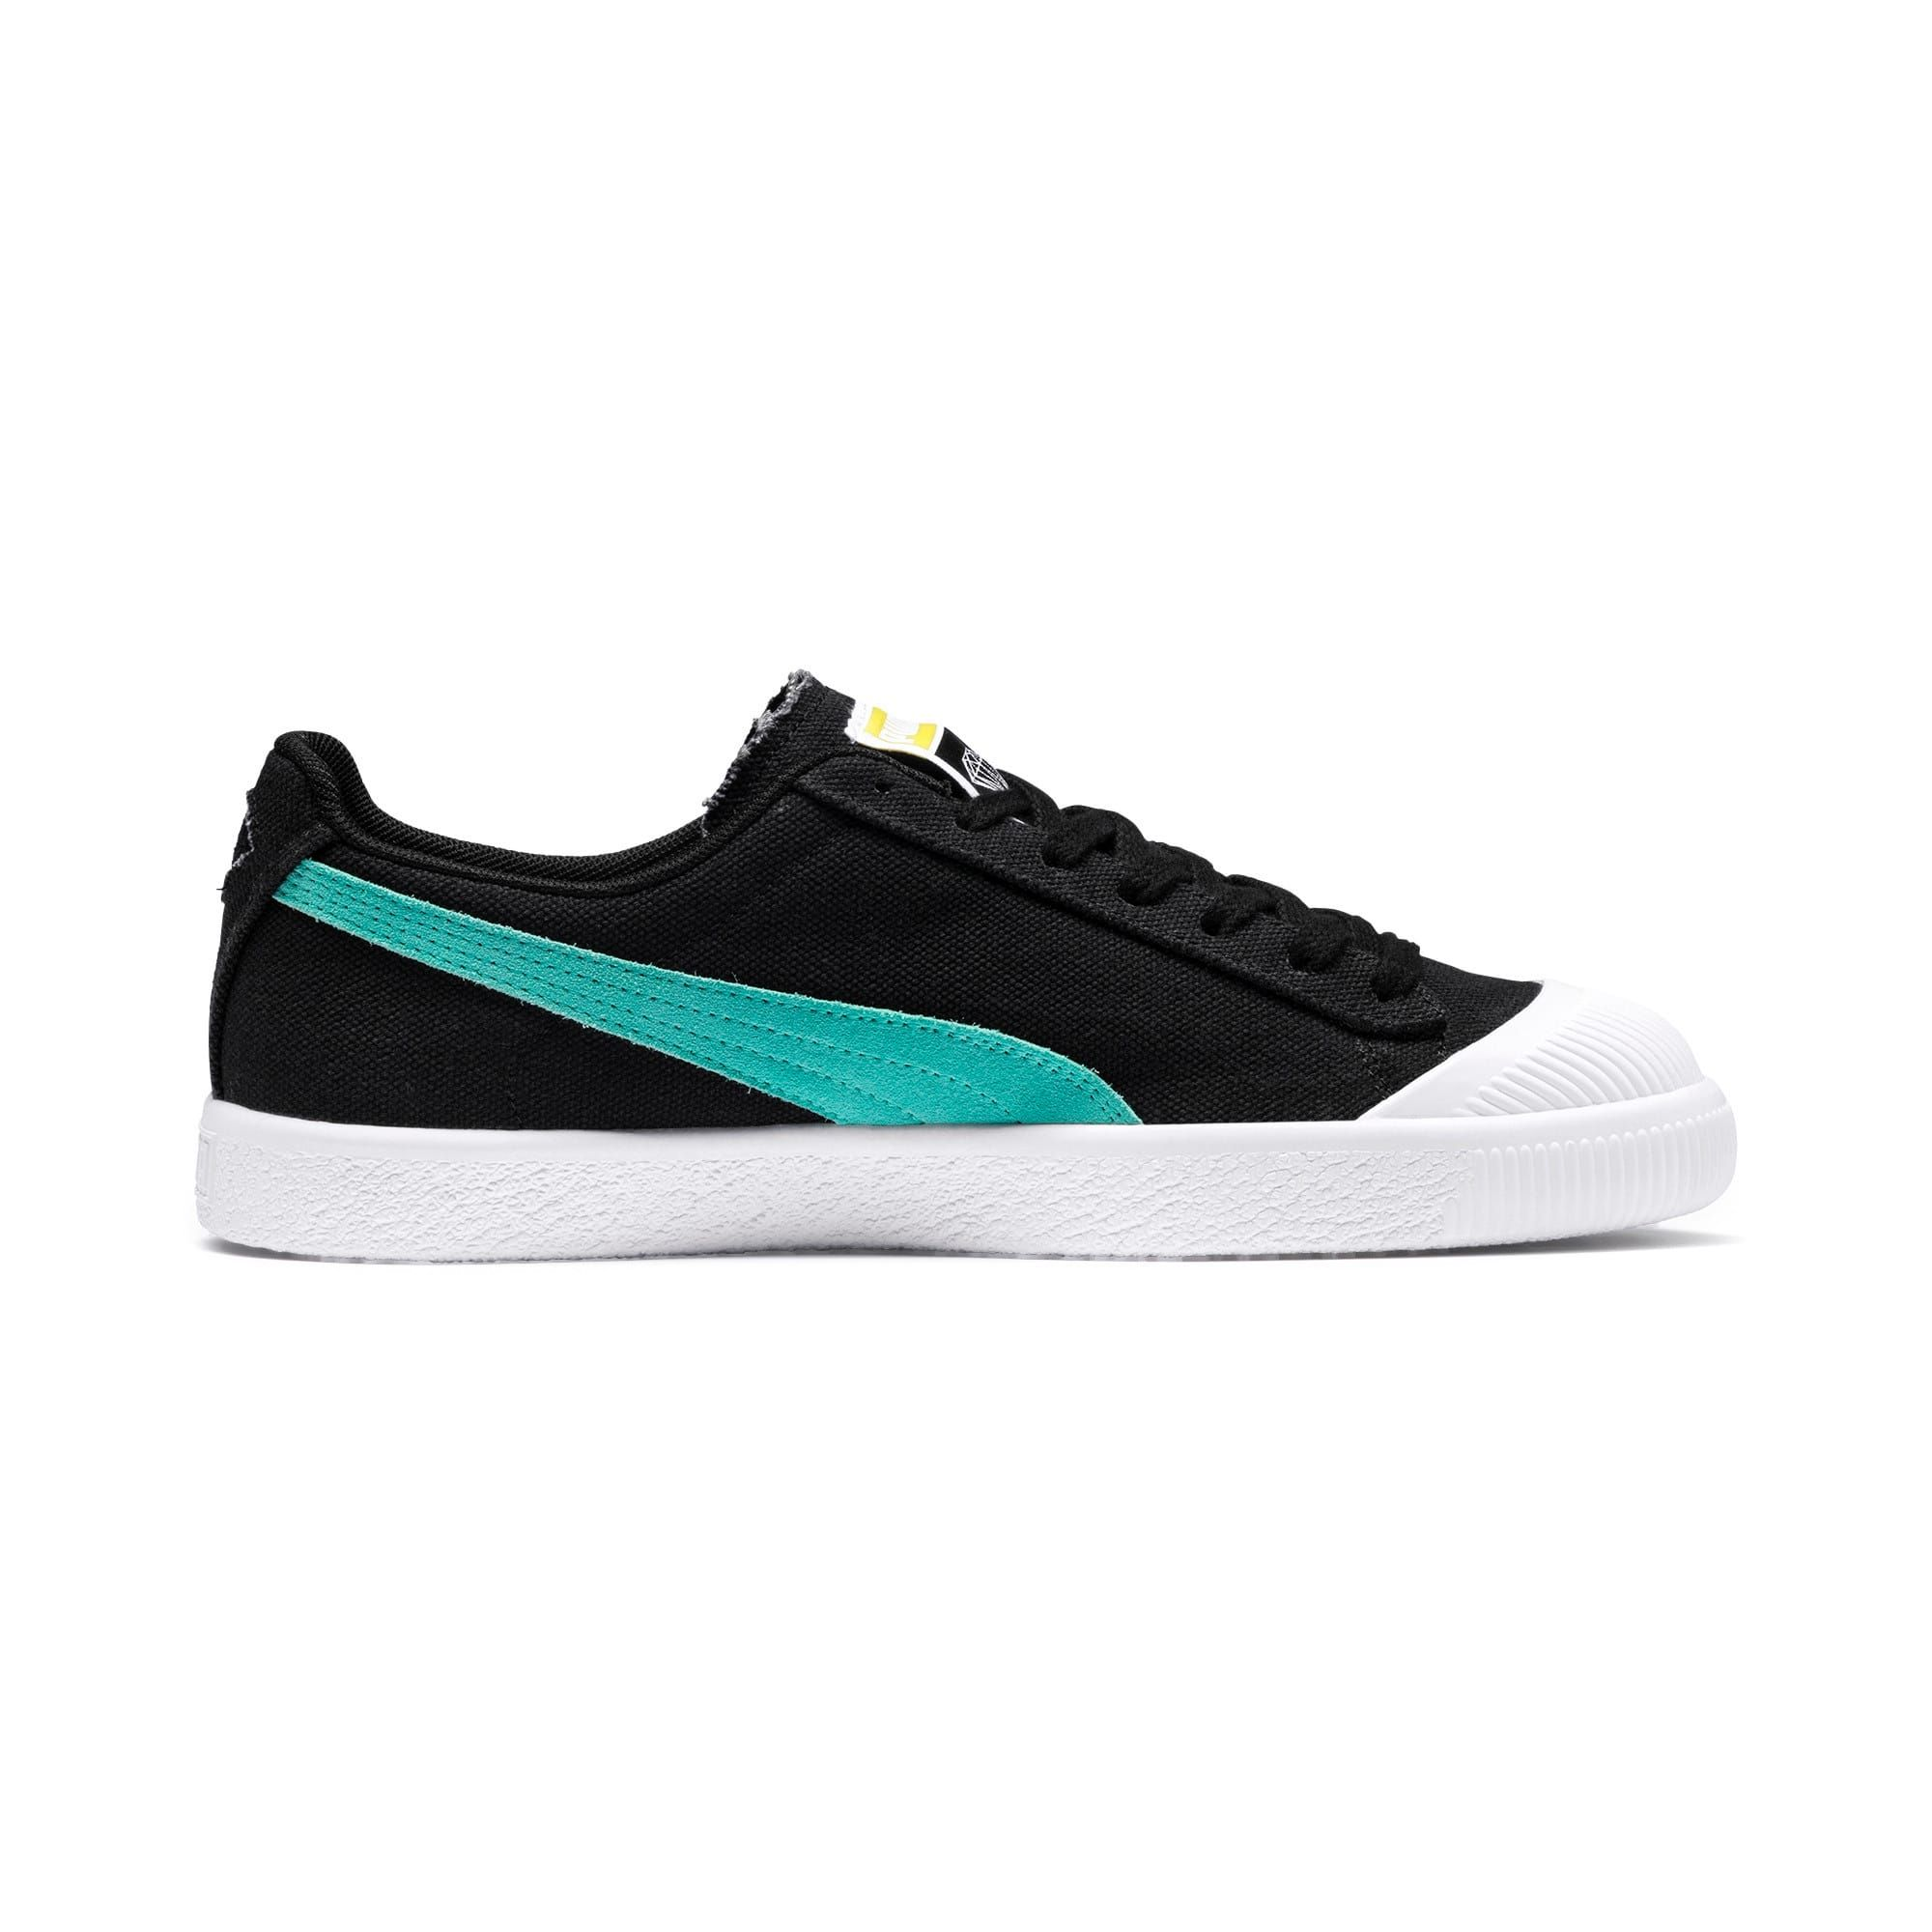 Chaussure Basket Clyde PUMA x DIAMOND SUPPLY pour Homme